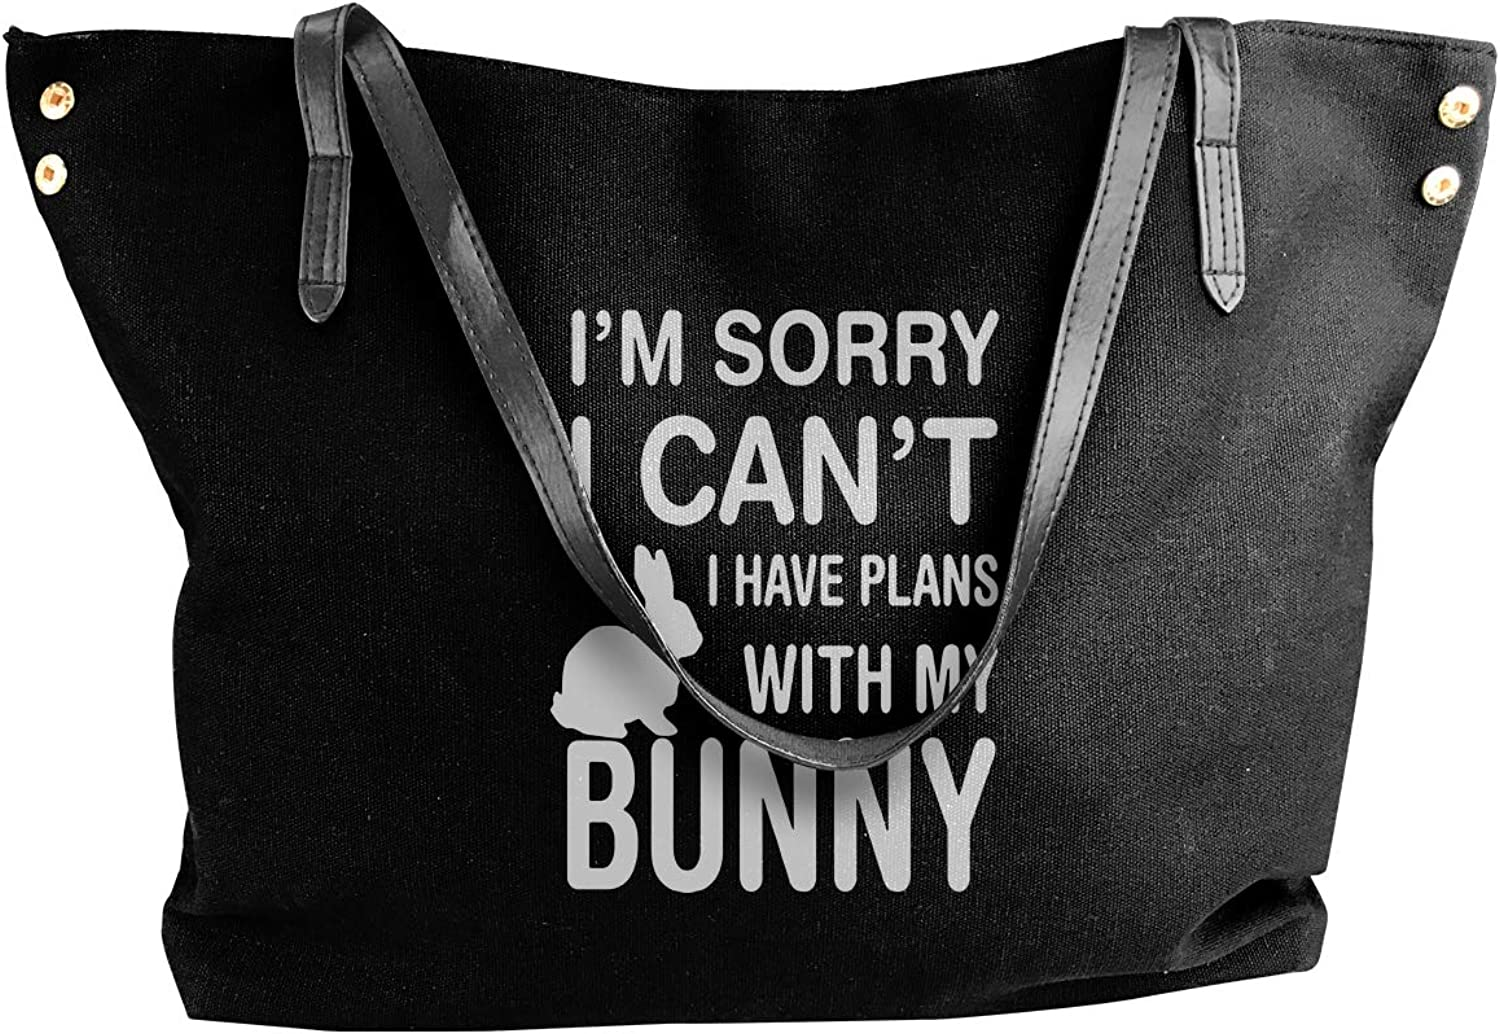 Sorry I Can't I Have Plans With My Bunny Women'S Casual Canvas Handbag For Travel Shoulder Tote